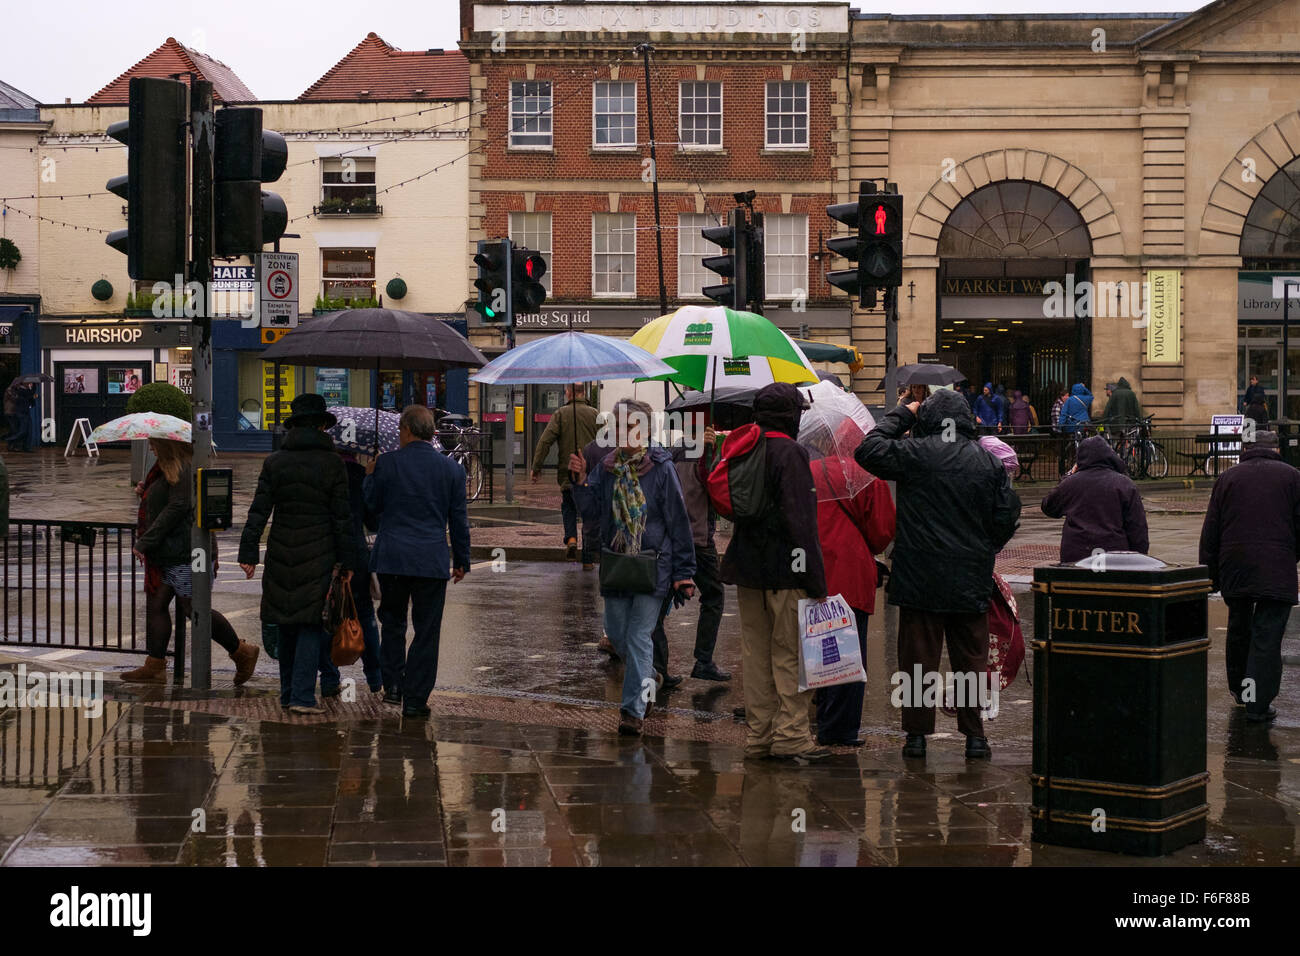 Uk Weather A Very Wet Day For Shopping In Salisbury With People Crossing The Road Using Umbrellas To Protect Them From Heavy Rain